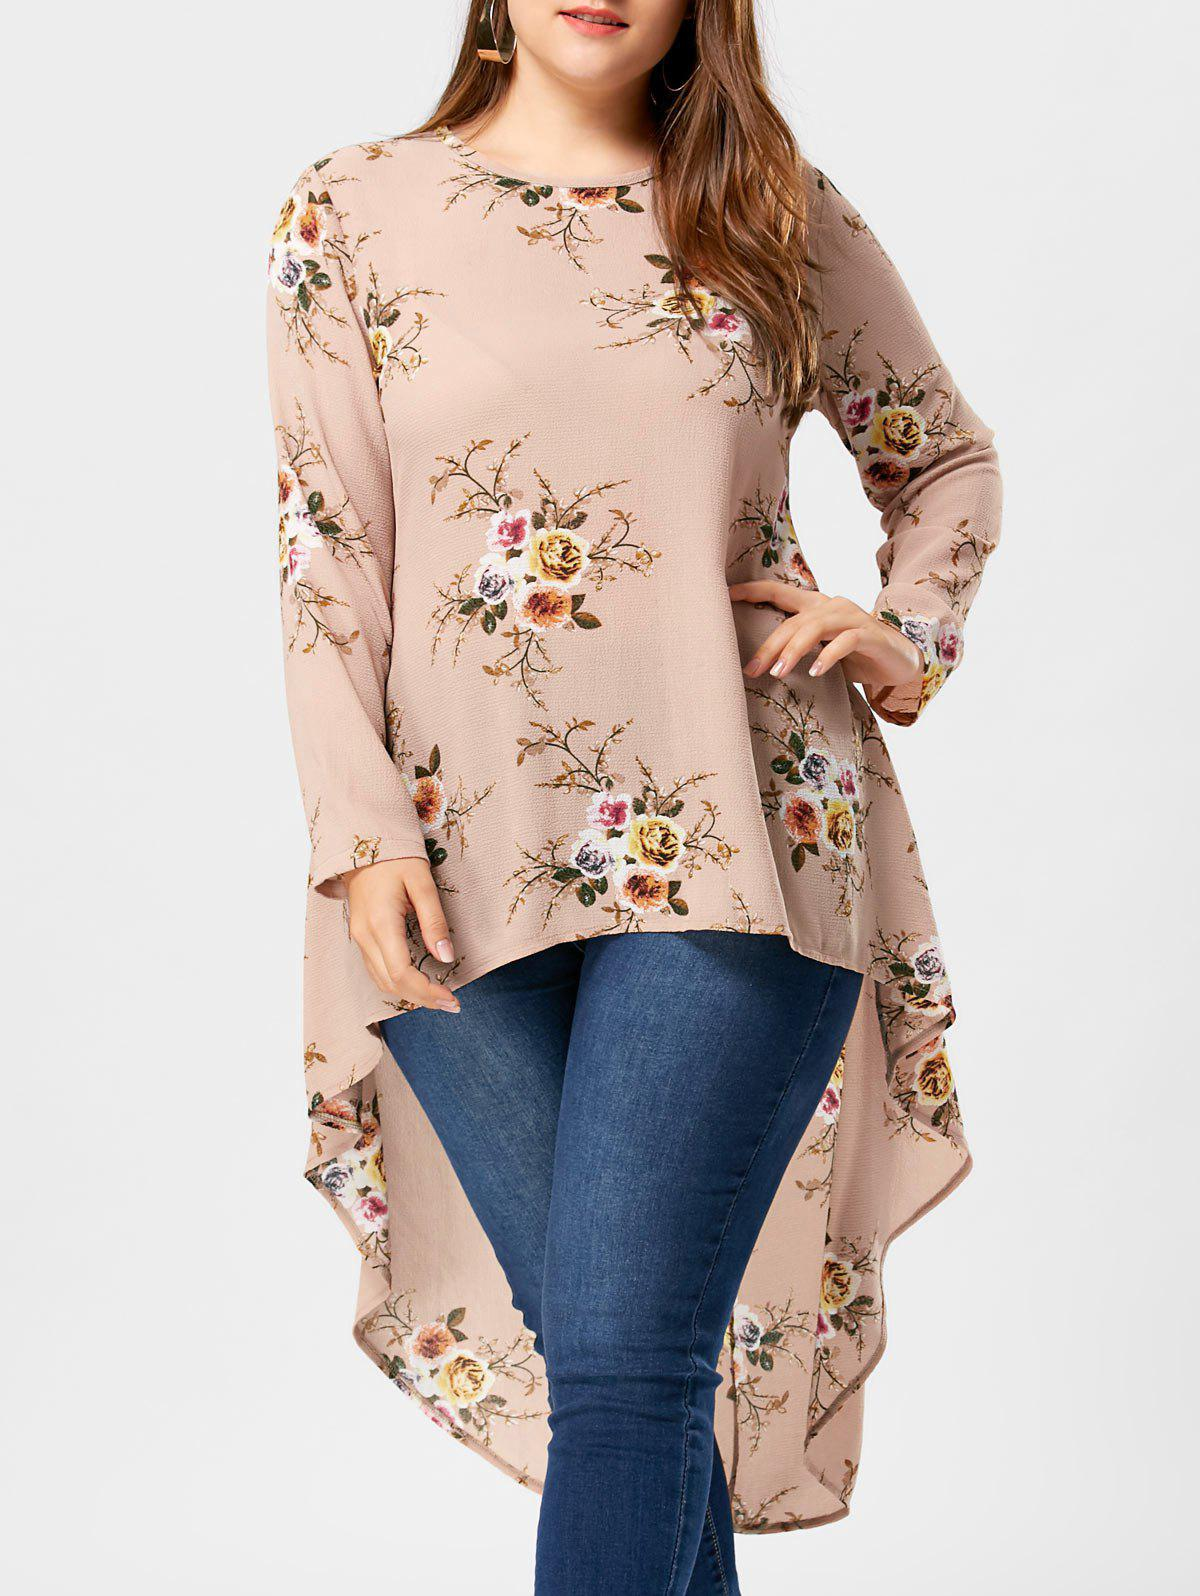 Plus Size Floral High Low Hem BlouseWOMEN<br><br>Size: 4XL; Color: APRICOT; Material: Polyester; Shirt Length: Long; Sleeve Length: Full; Collar: Crew Neck; Style: Casual; Season: Fall,Spring,Summer; Pattern Type: Floral; Weight: 0.3400kg; Package Contents: 1 x Blouse;